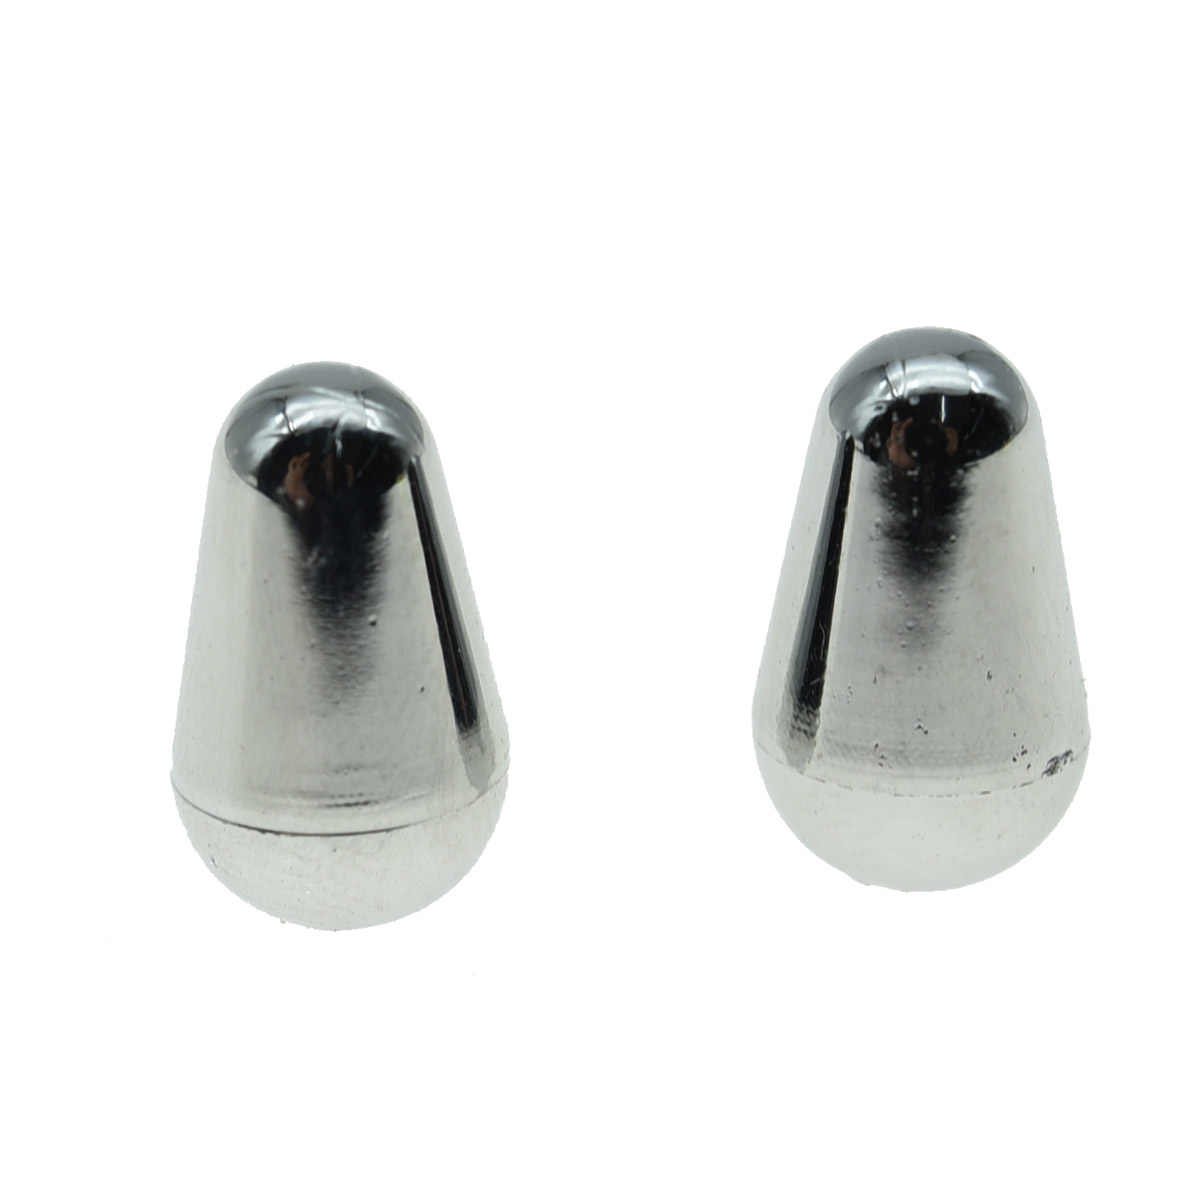 KAISH 2 Pcs Chrome Strat Guitar 5 Way Switch Tip Switch Knob Cap fits For USA Fender Strat